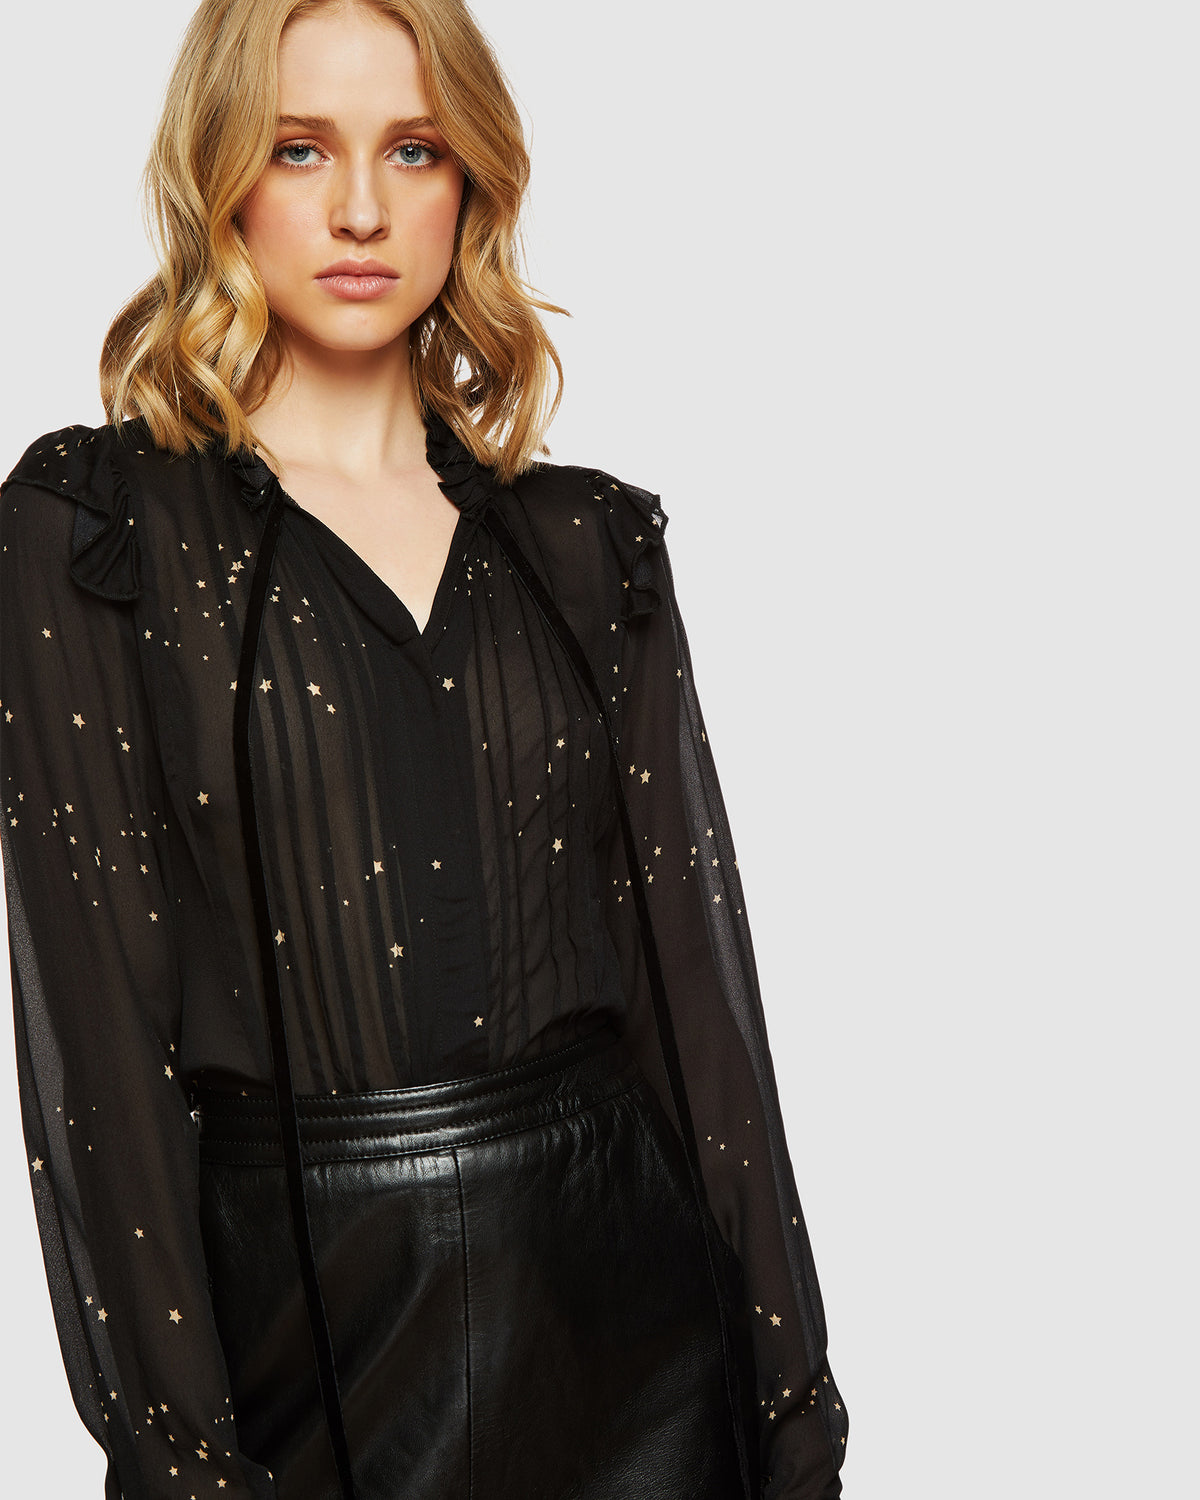 MATILDA STARGAZER TOP BLACK/GOLD